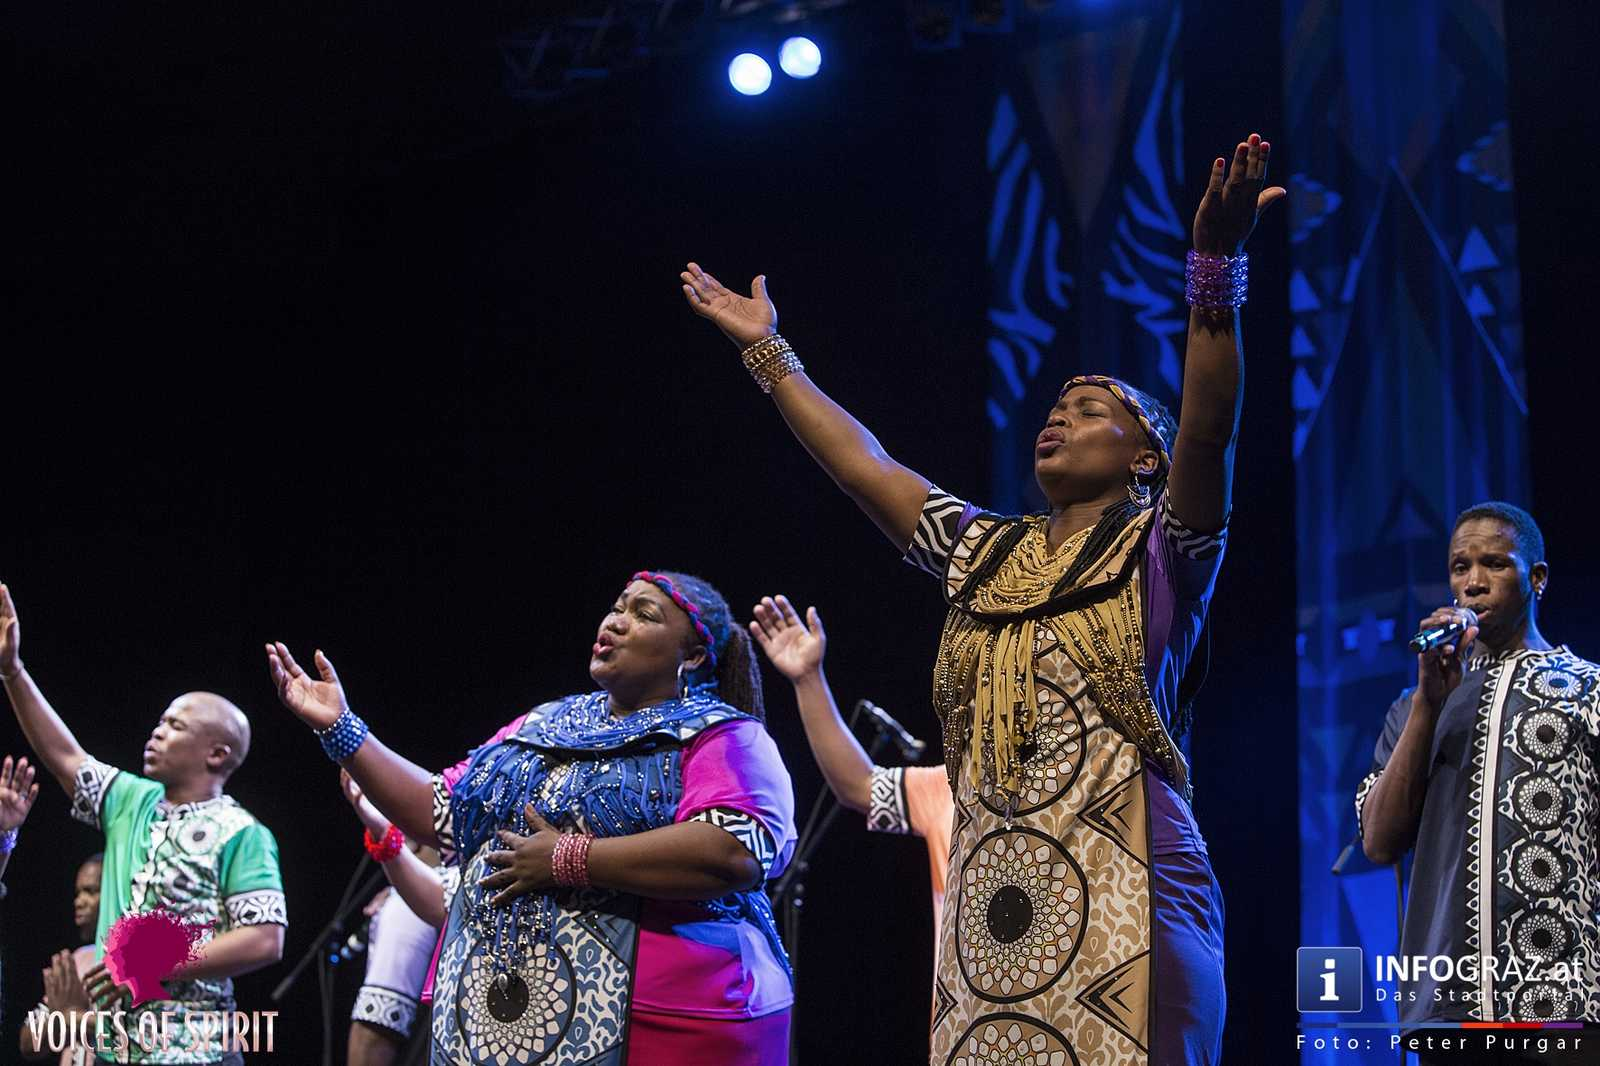 soweto gospel choir internationales chorfestival statdthalle graz voices of spirit eroeffnung festivals 2016 141